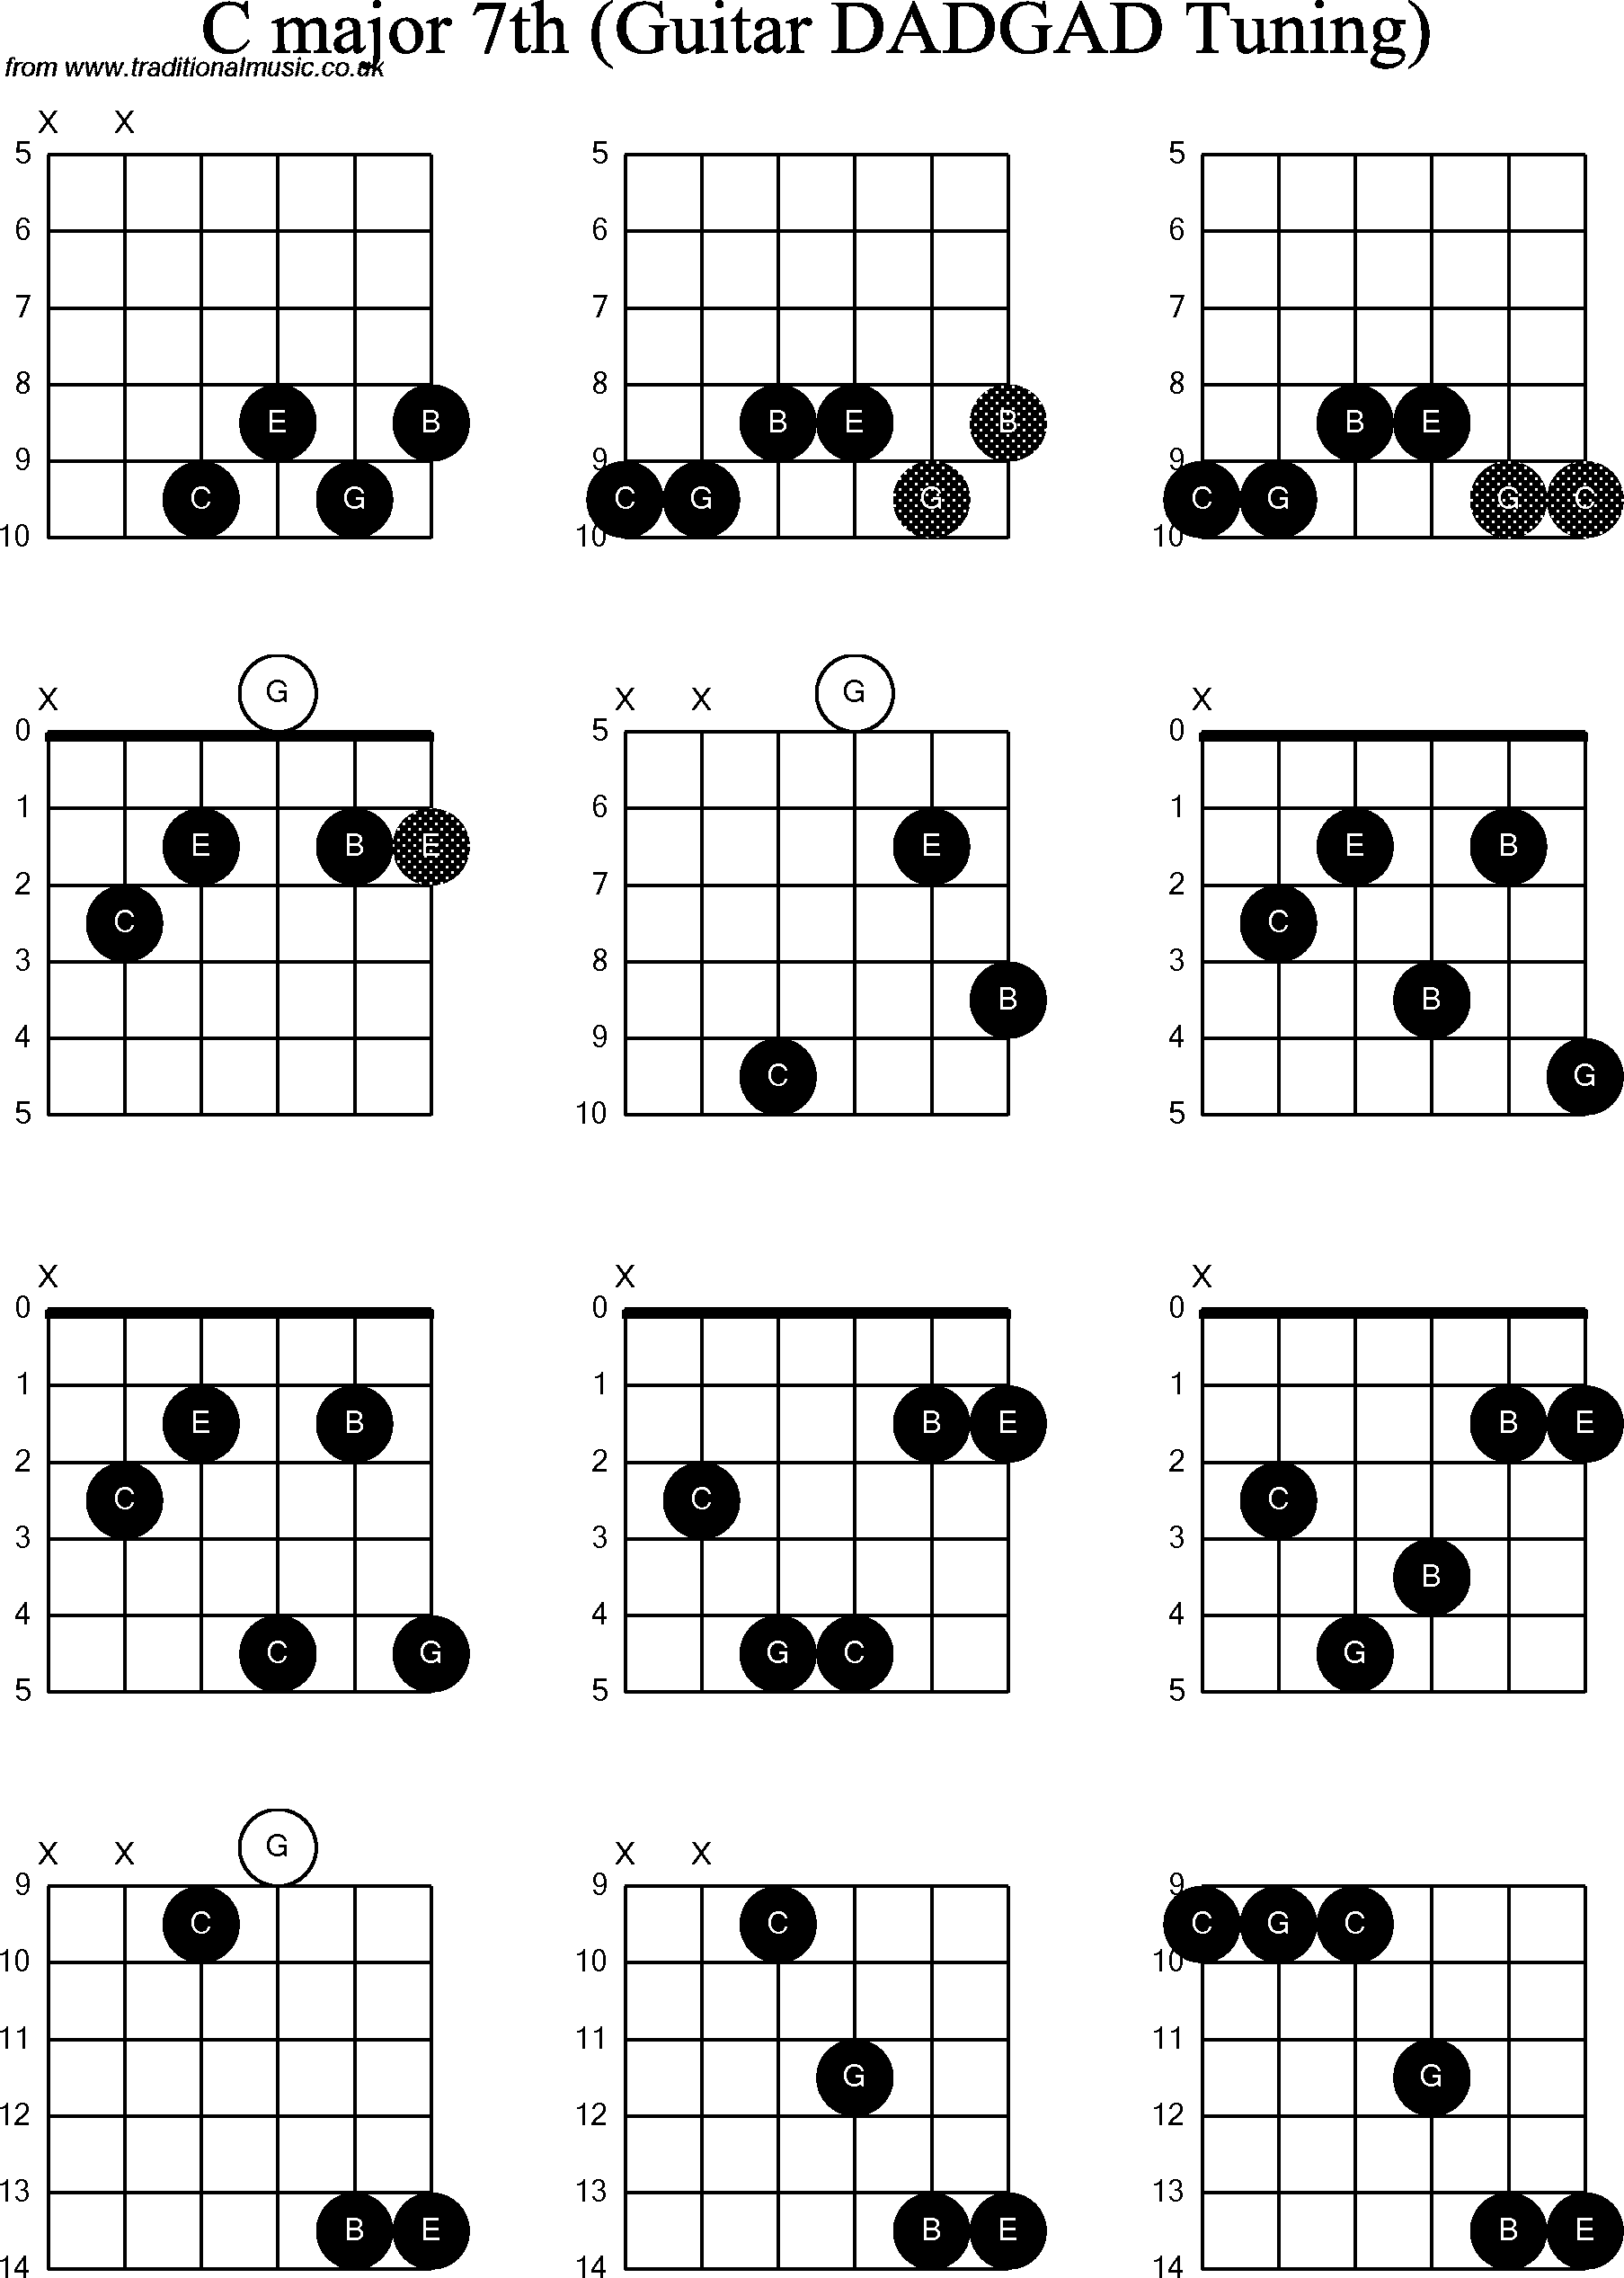 Chord diagrams d modal guitar dadgad c major7th chord diagrams for d modal guitardadgad c major7th hexwebz Gallery